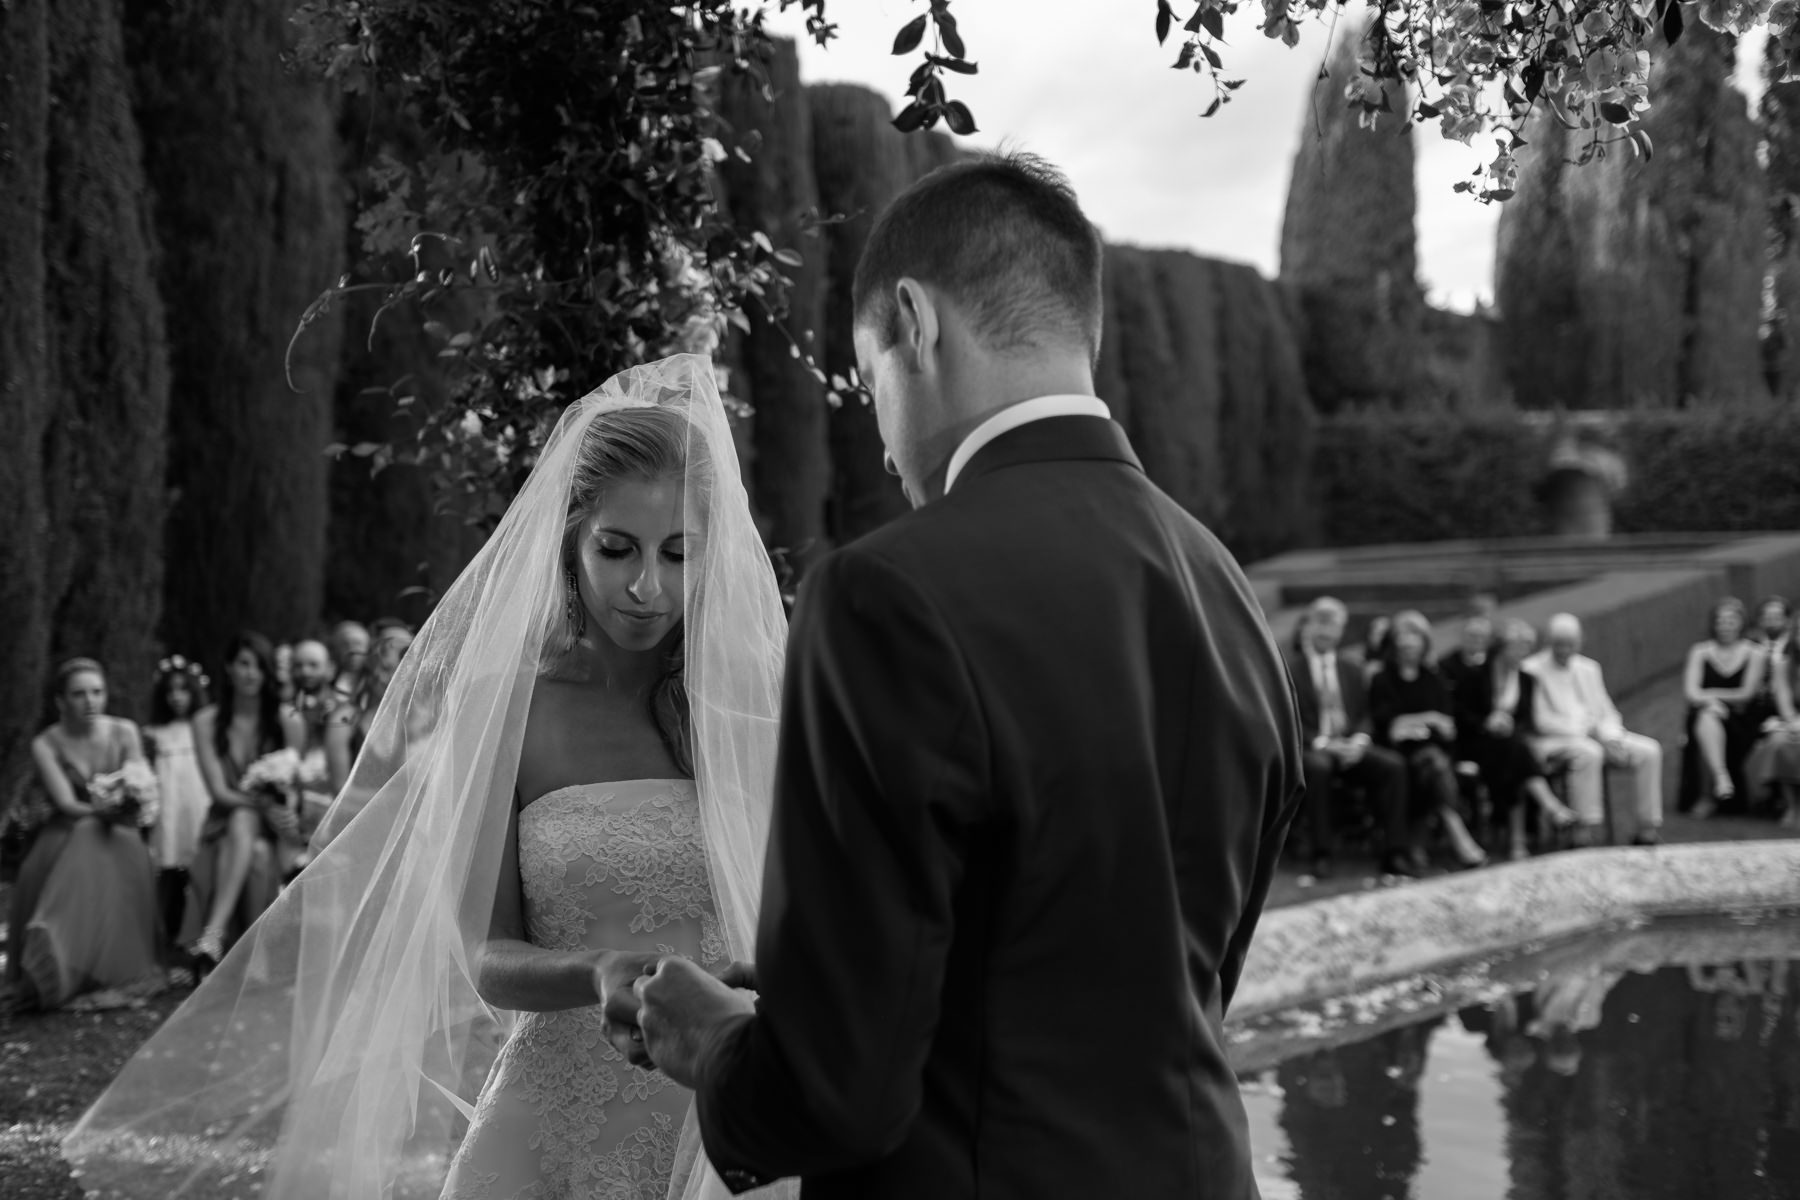 religious ceremony at la foce in Tuscany